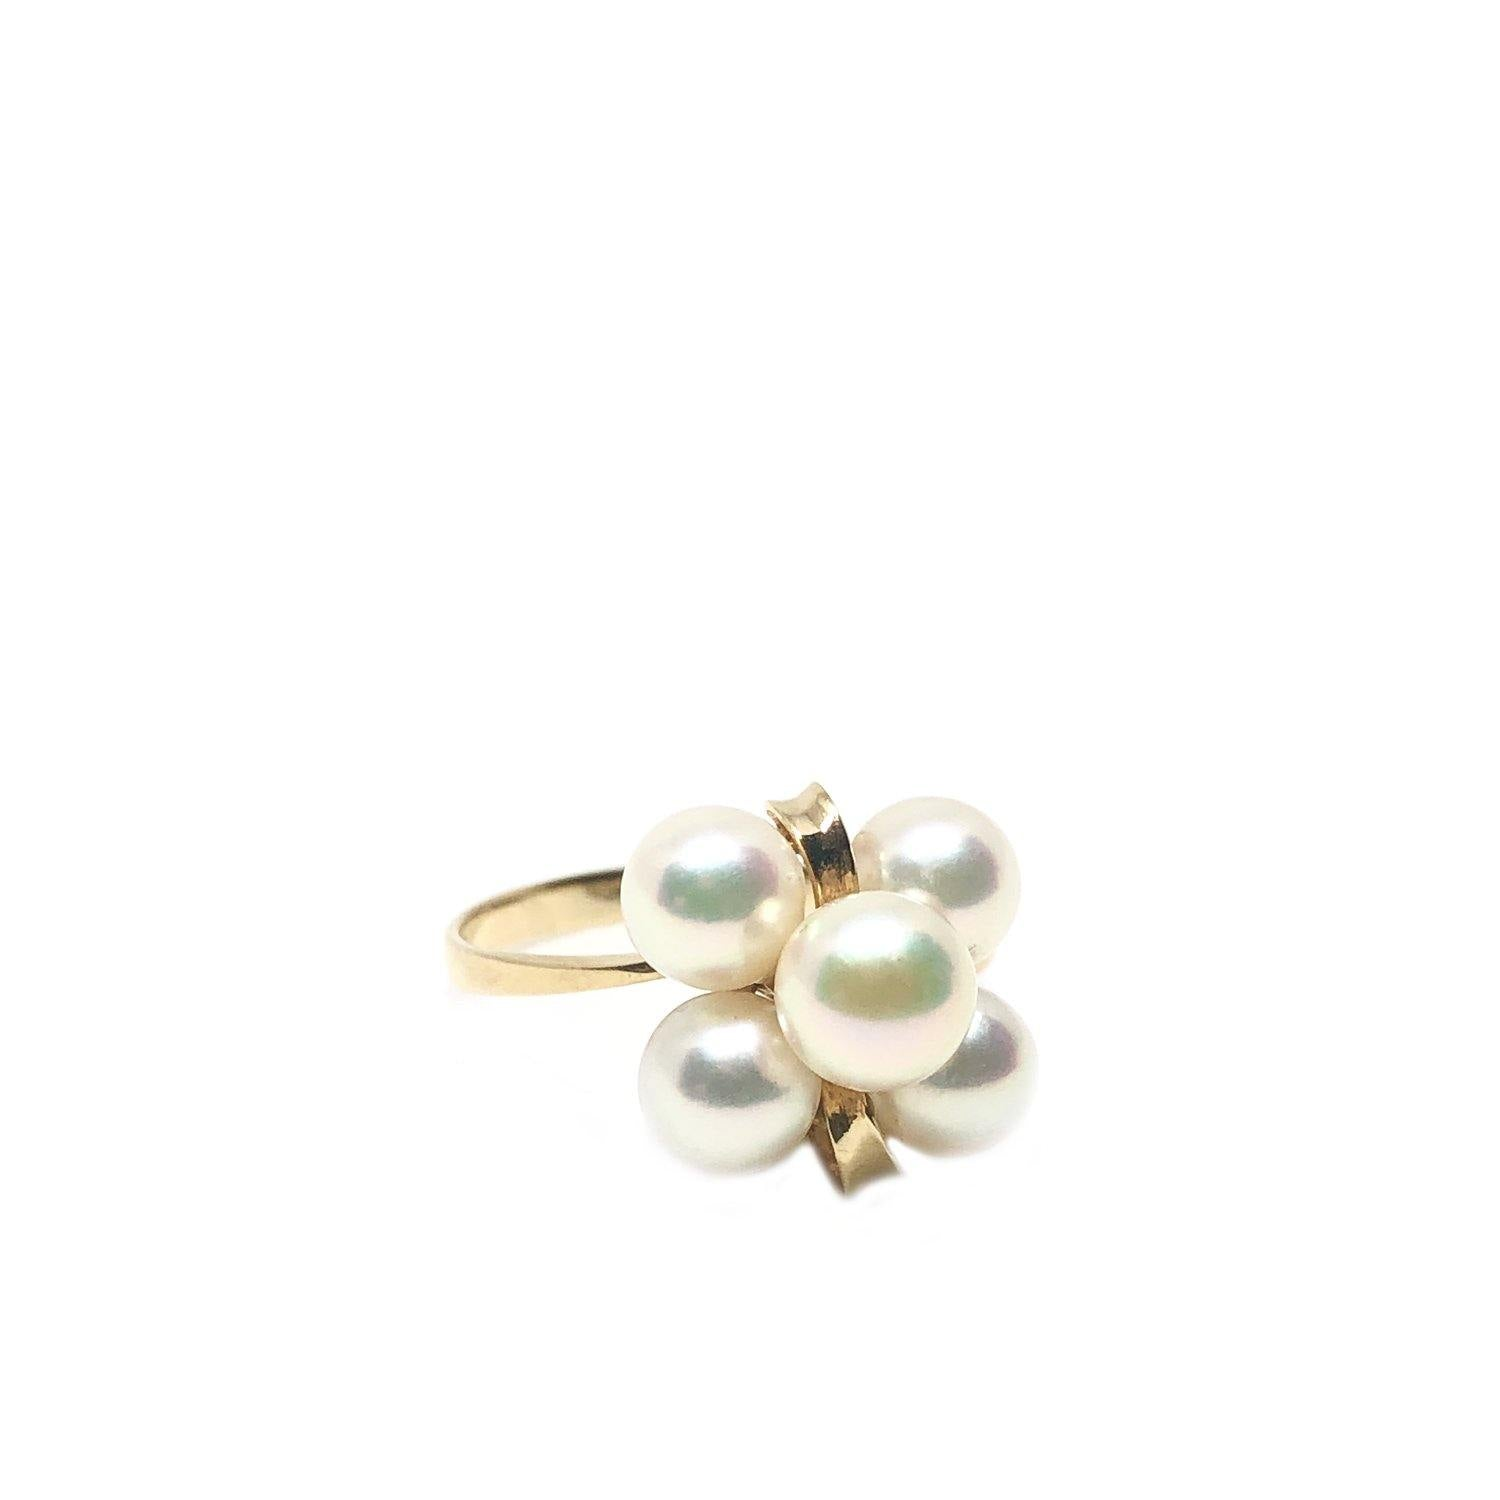 Retro Cluster Design Japanese Saltwater Akoya Cultured Pearl Ring- 18K Yellow Gold Size 6 3/4